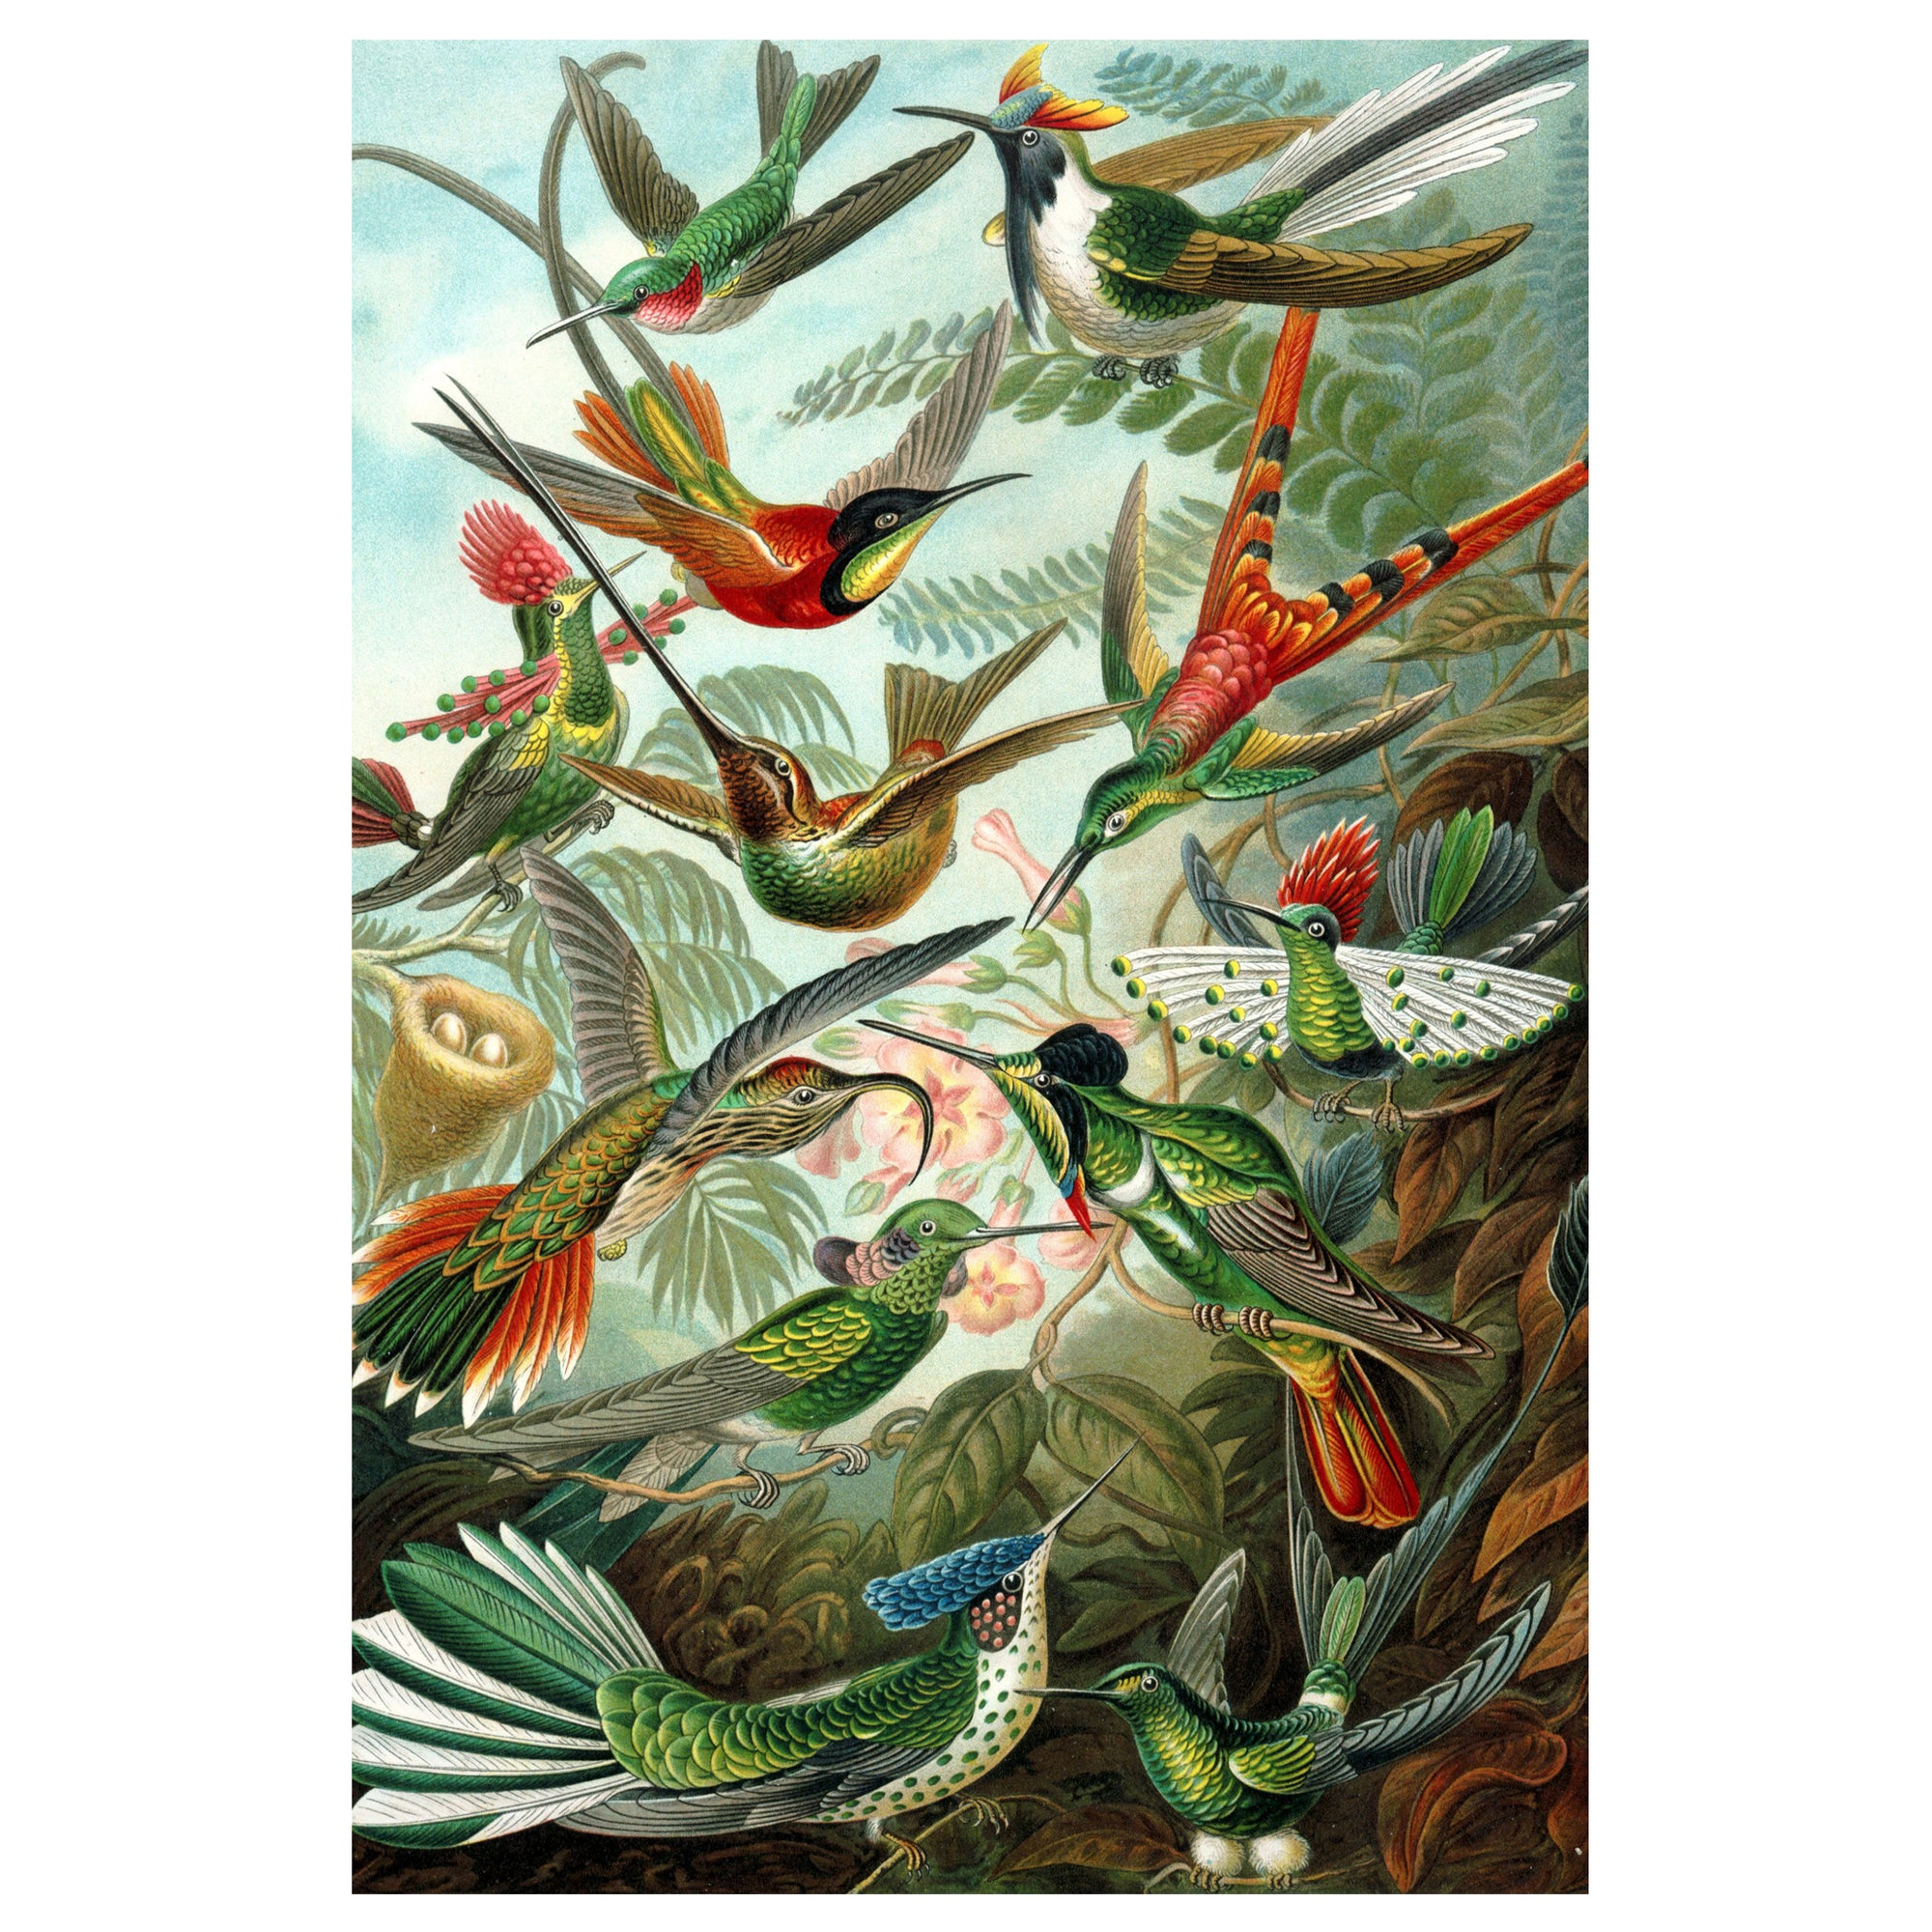 Hummingbirds - Ernst Haeckel